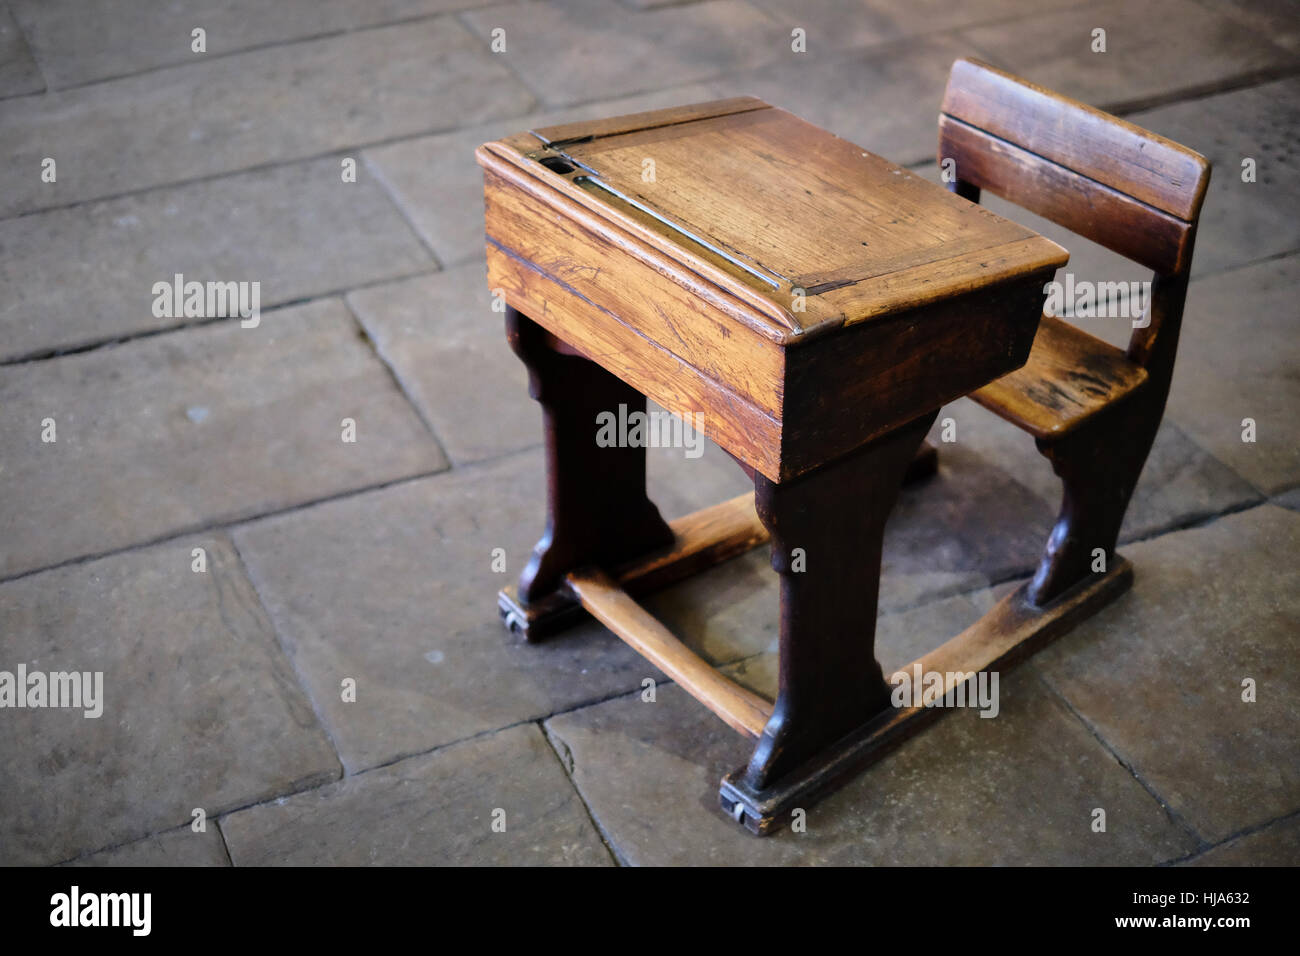 Antique, vintage, wooden school desk and chair on a Yorkshire stone flagged  floor - Antique, Vintage, Wooden School Desk And Chair On A Yorkshire Stone